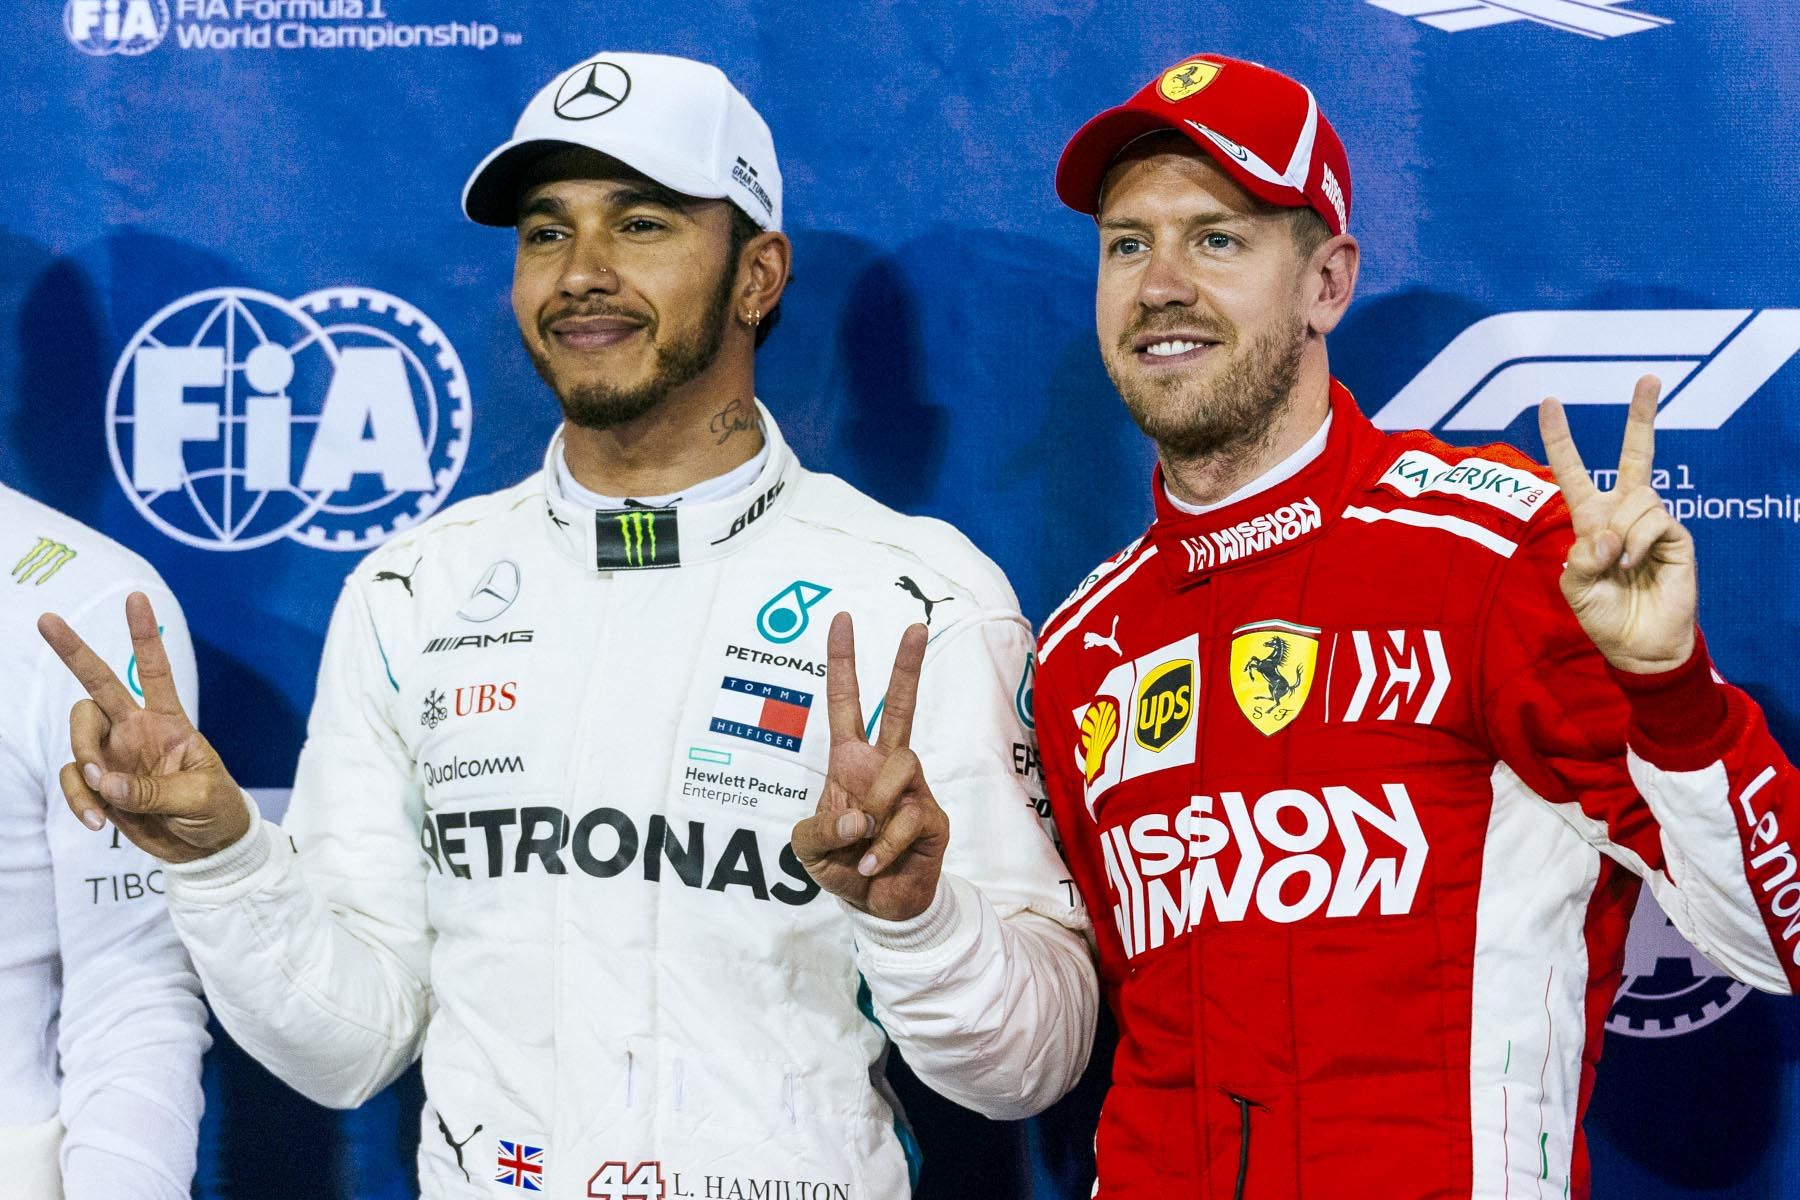 Lewis Hamilton and Sebastian Vettel at the 2018 Abu Dhabi Grand Prix.